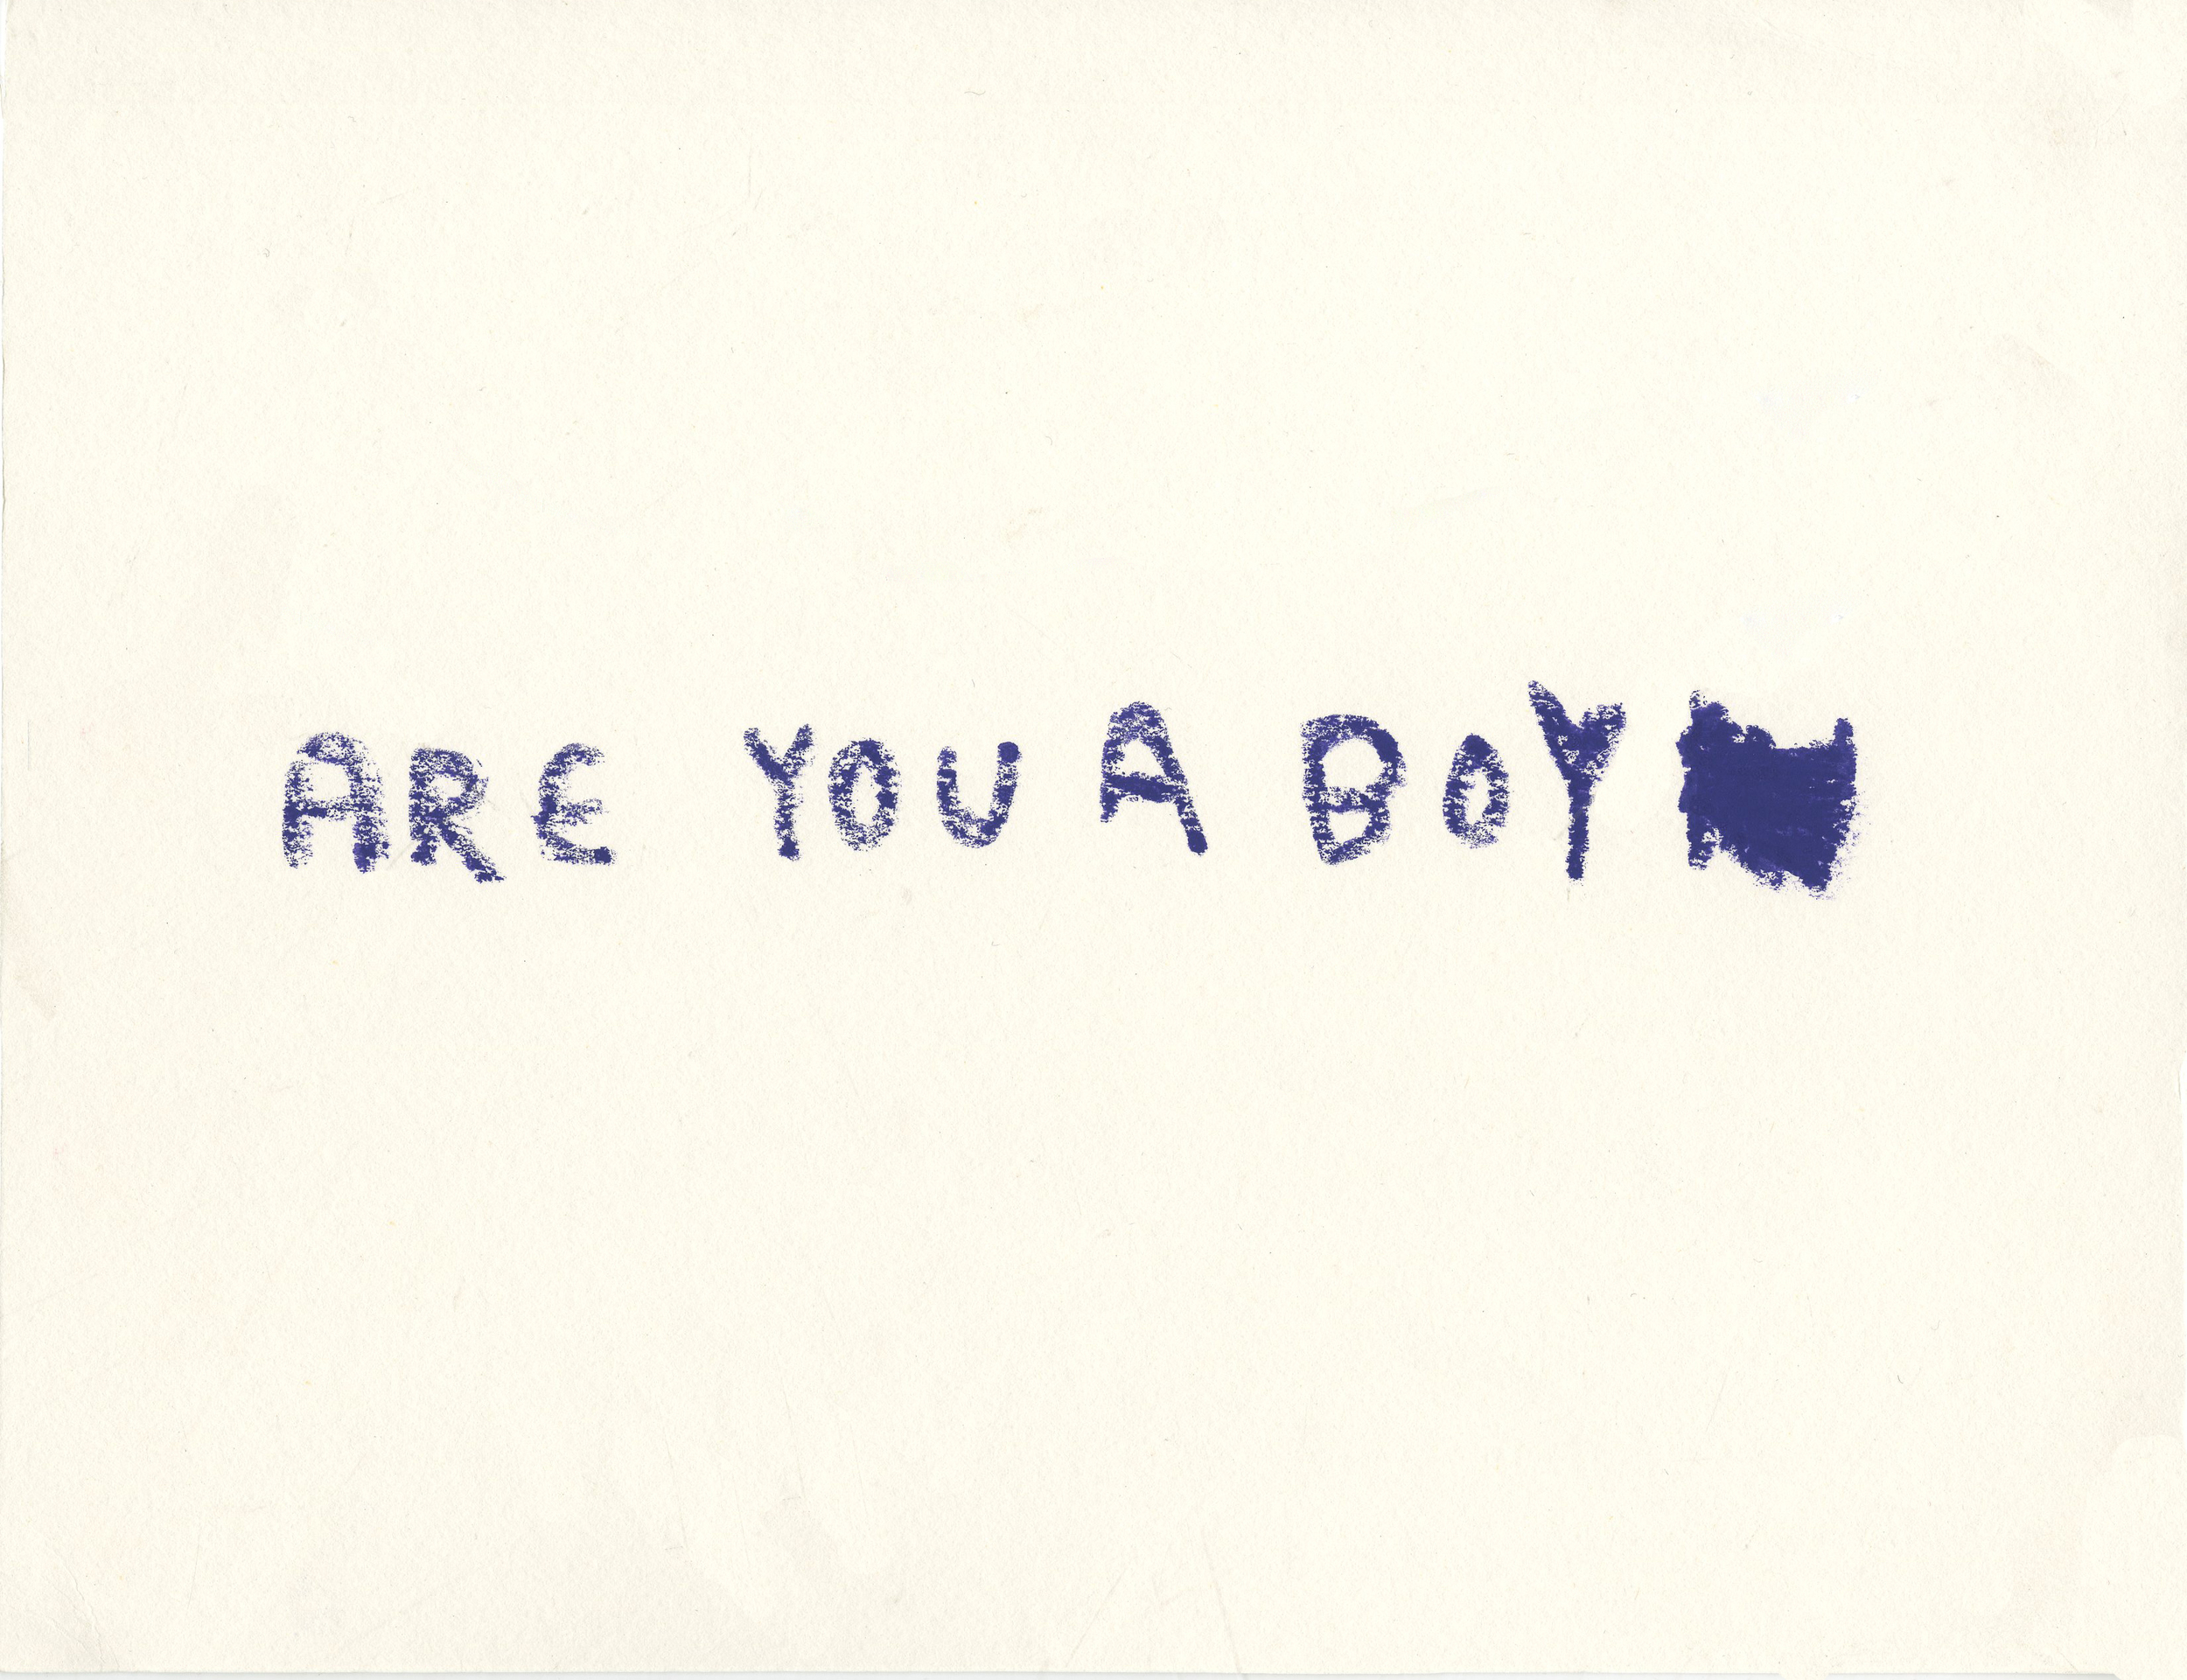 Are You A Boy copy.jpg